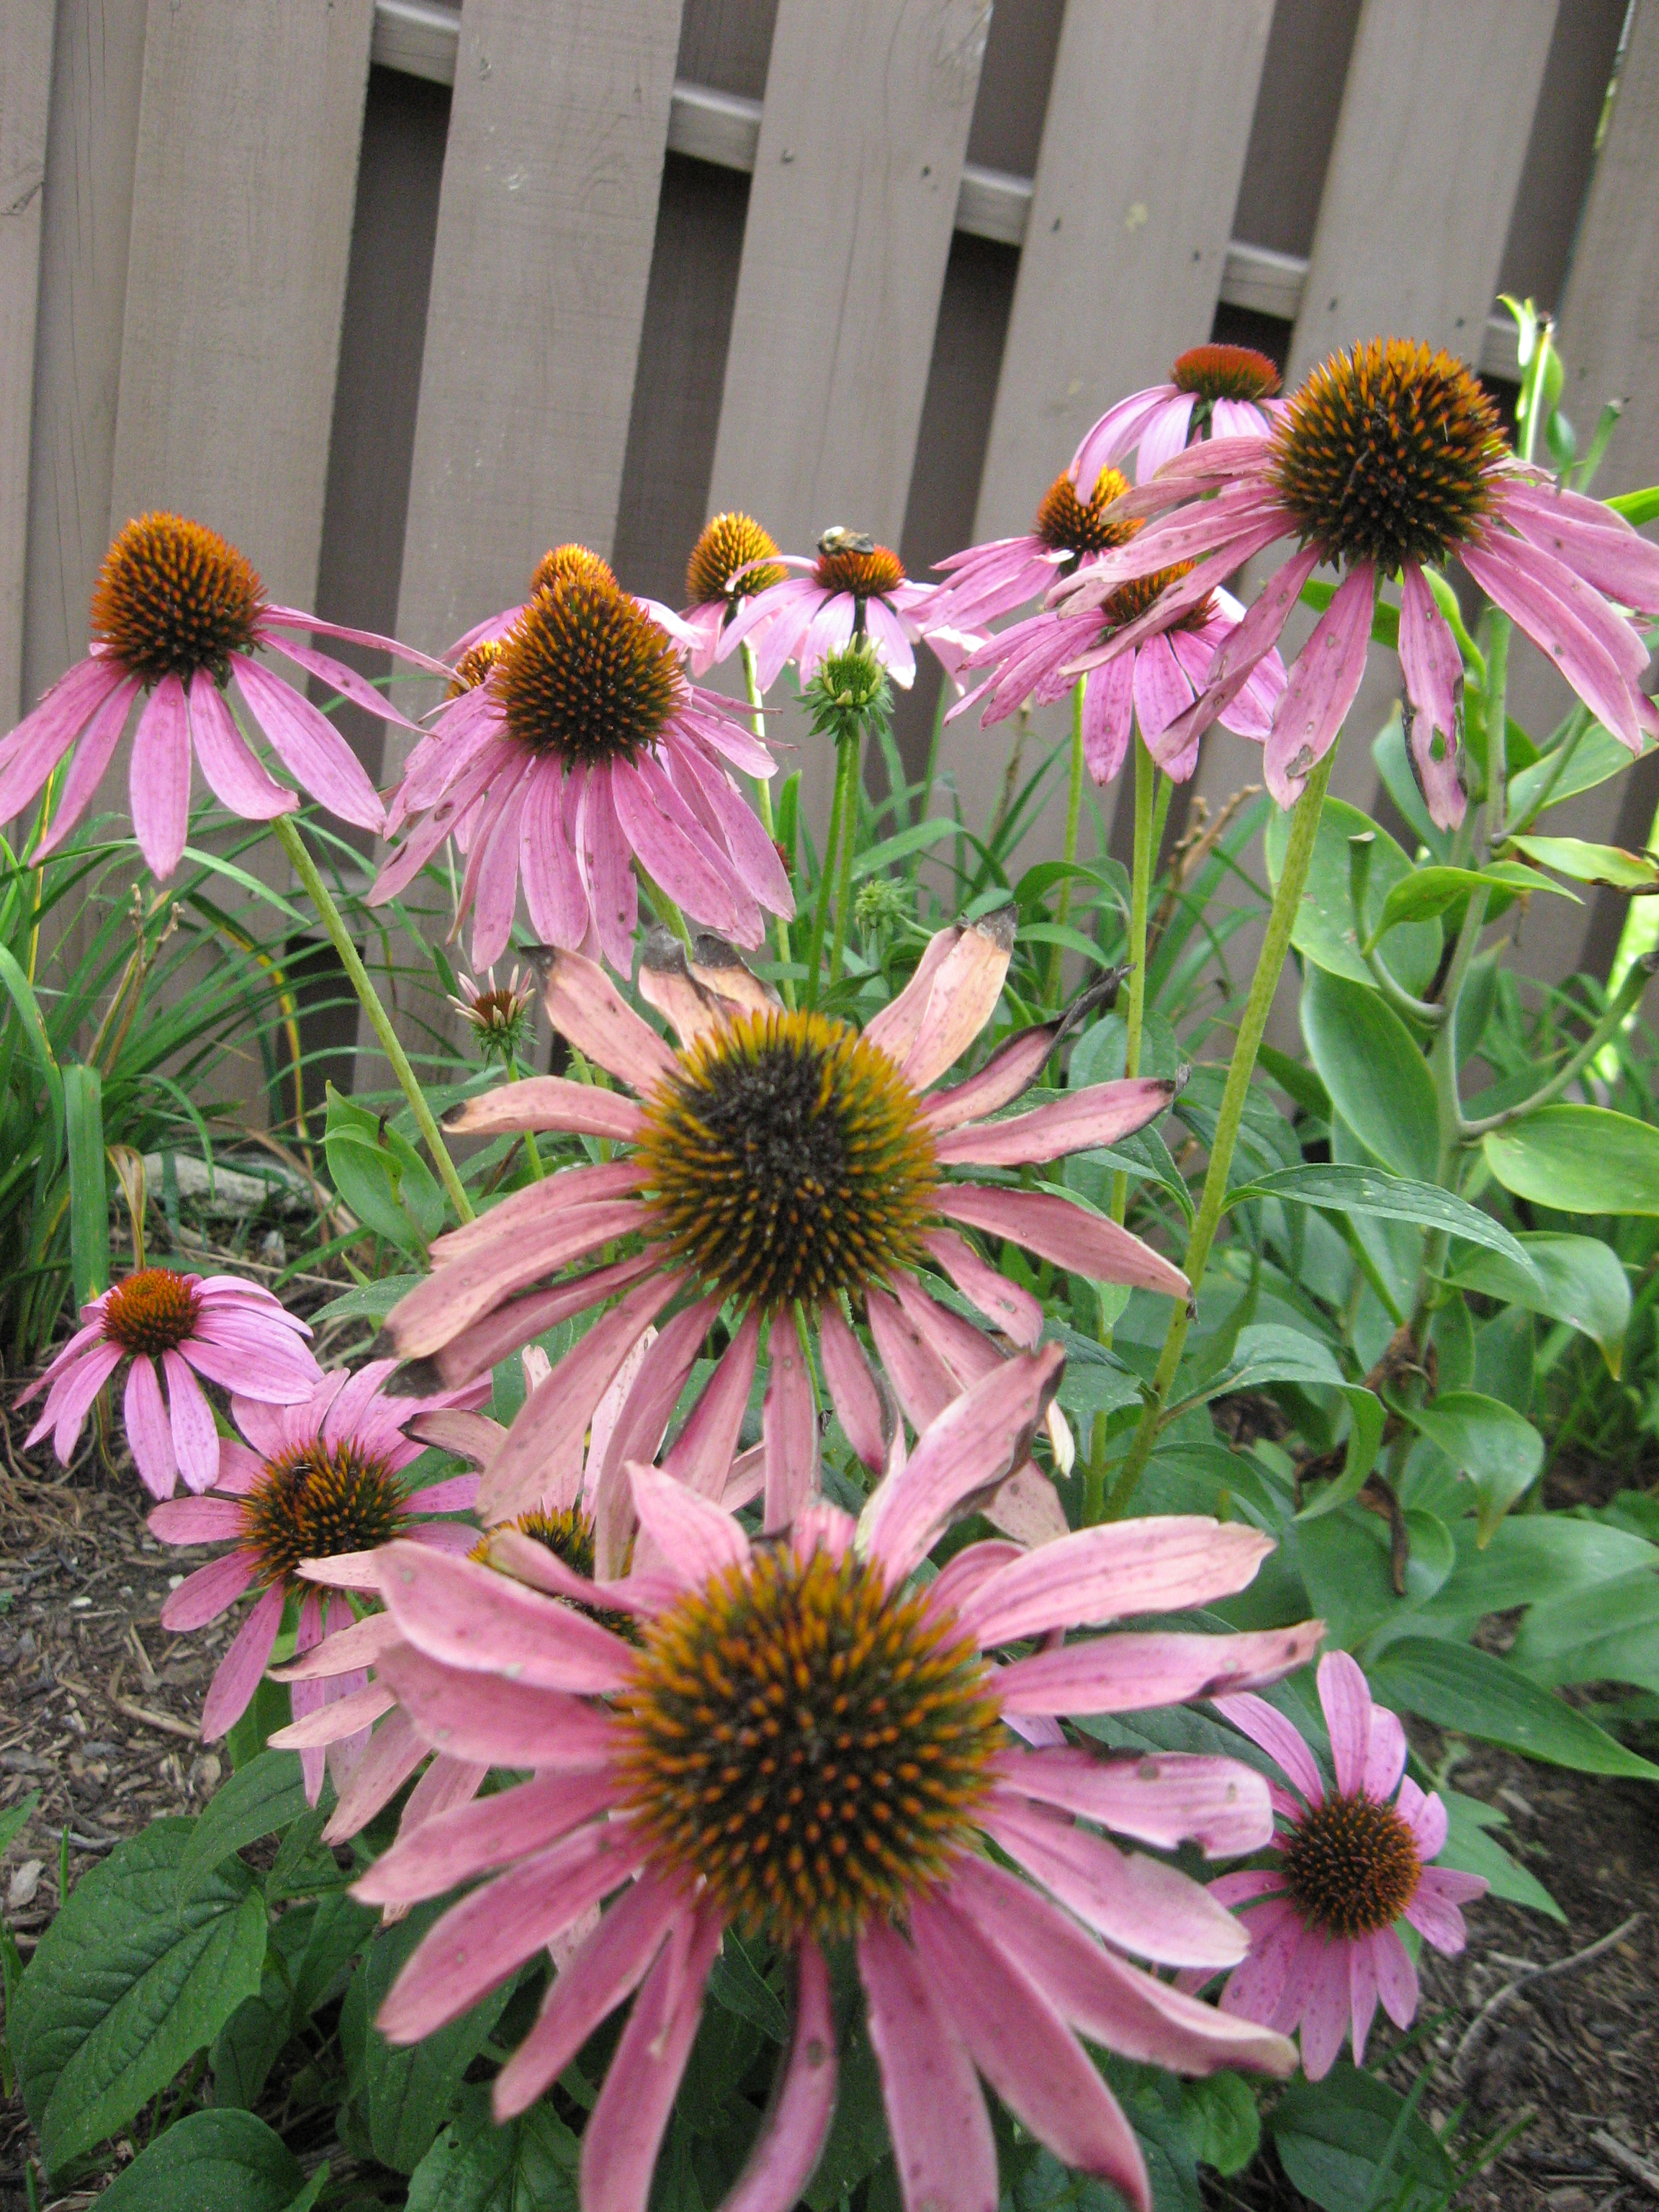 file echinacea purpurea jpg wikipedia. Black Bedroom Furniture Sets. Home Design Ideas